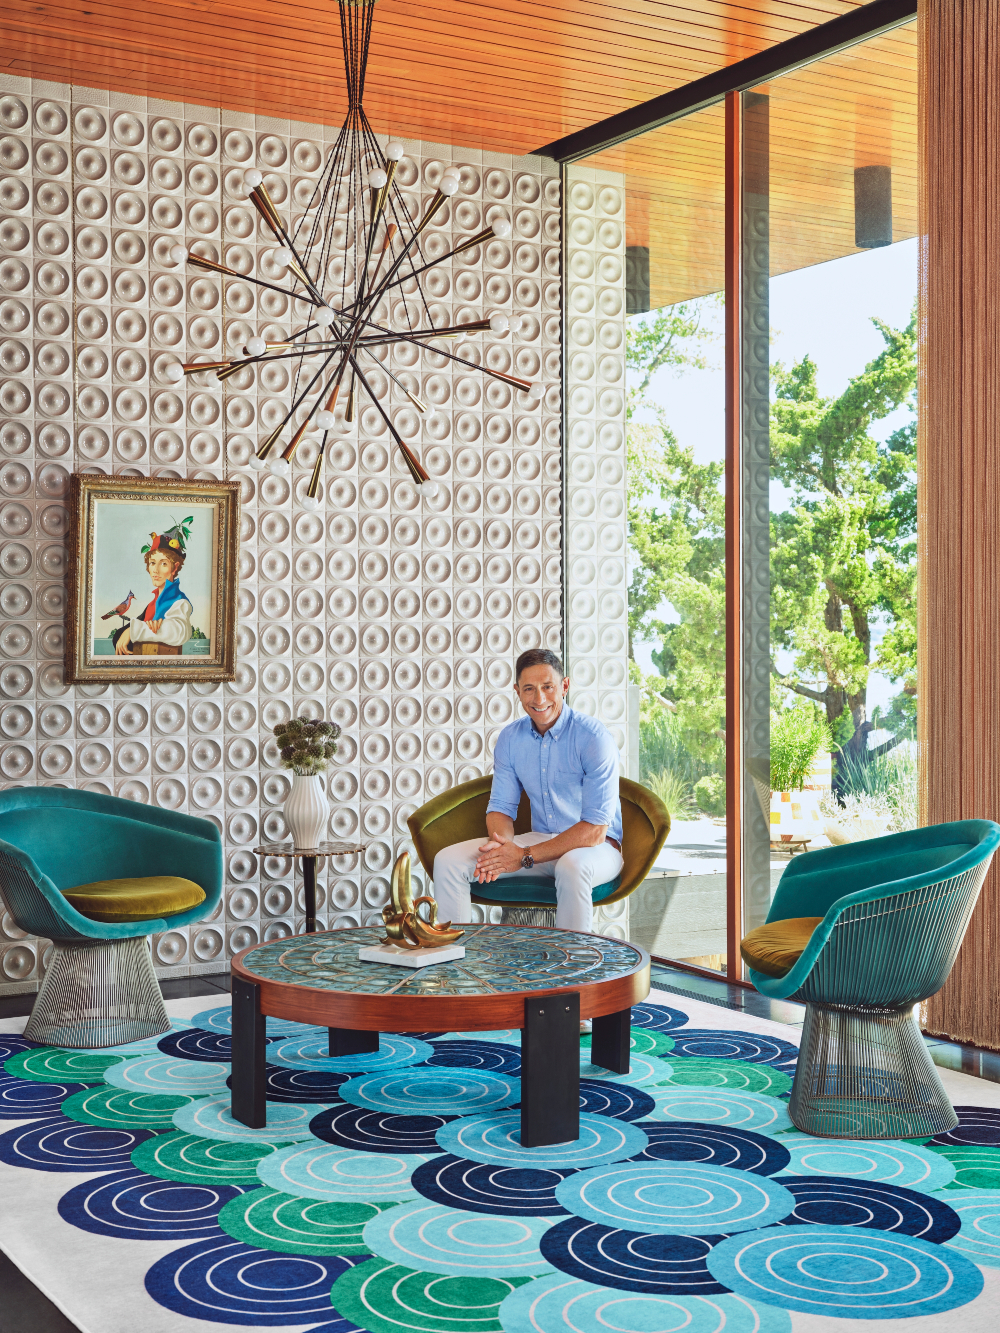 Ruggable joins forces with renowned home goods designer Jonathan Adler for a licensed line, the Jonathan Adler x Ruggable collection.